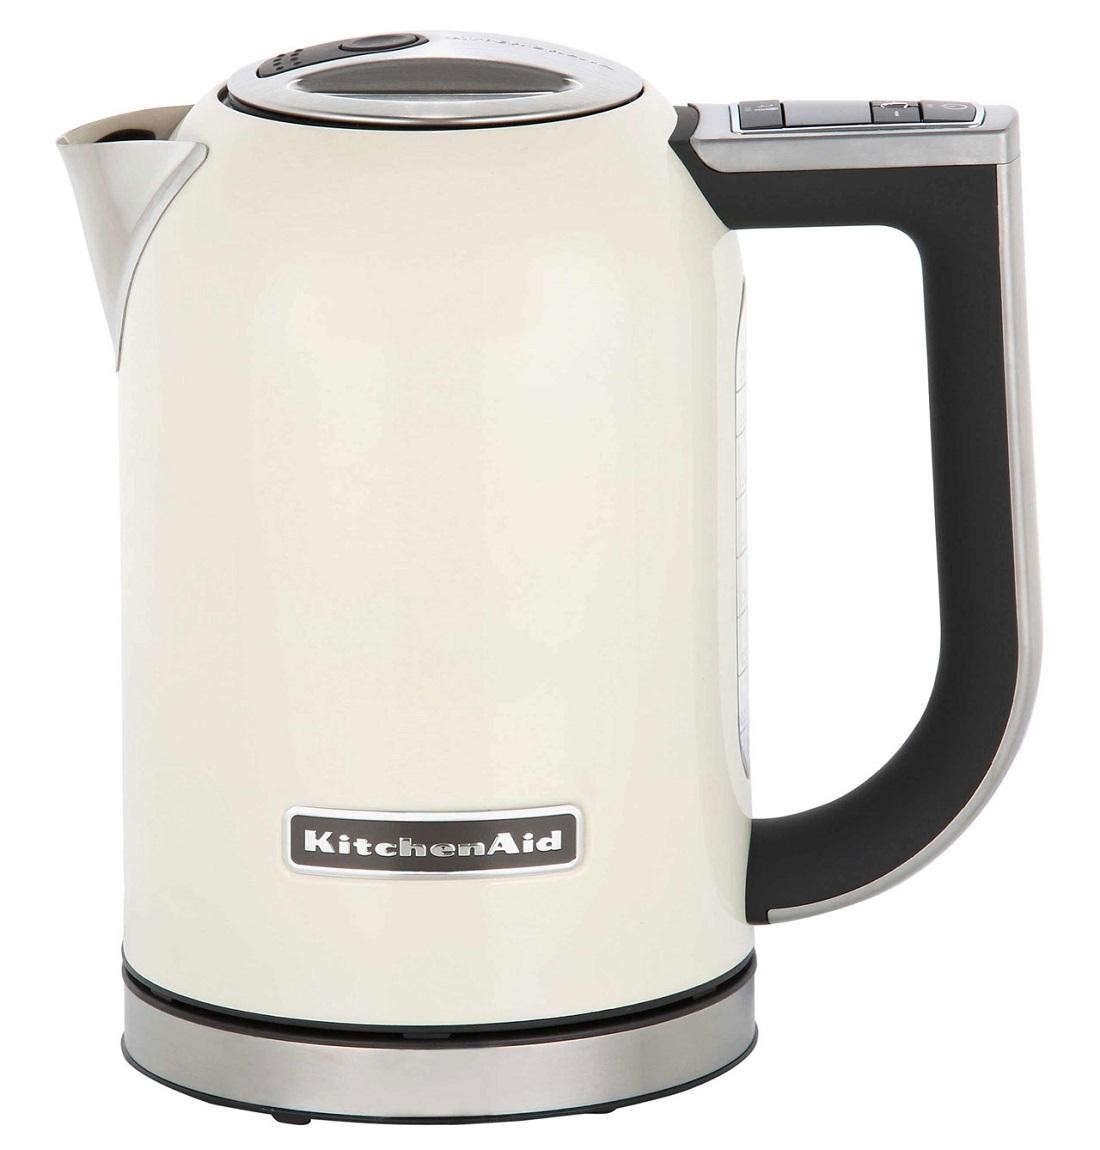 KitchenAid-5KEK1722BAC.jpg